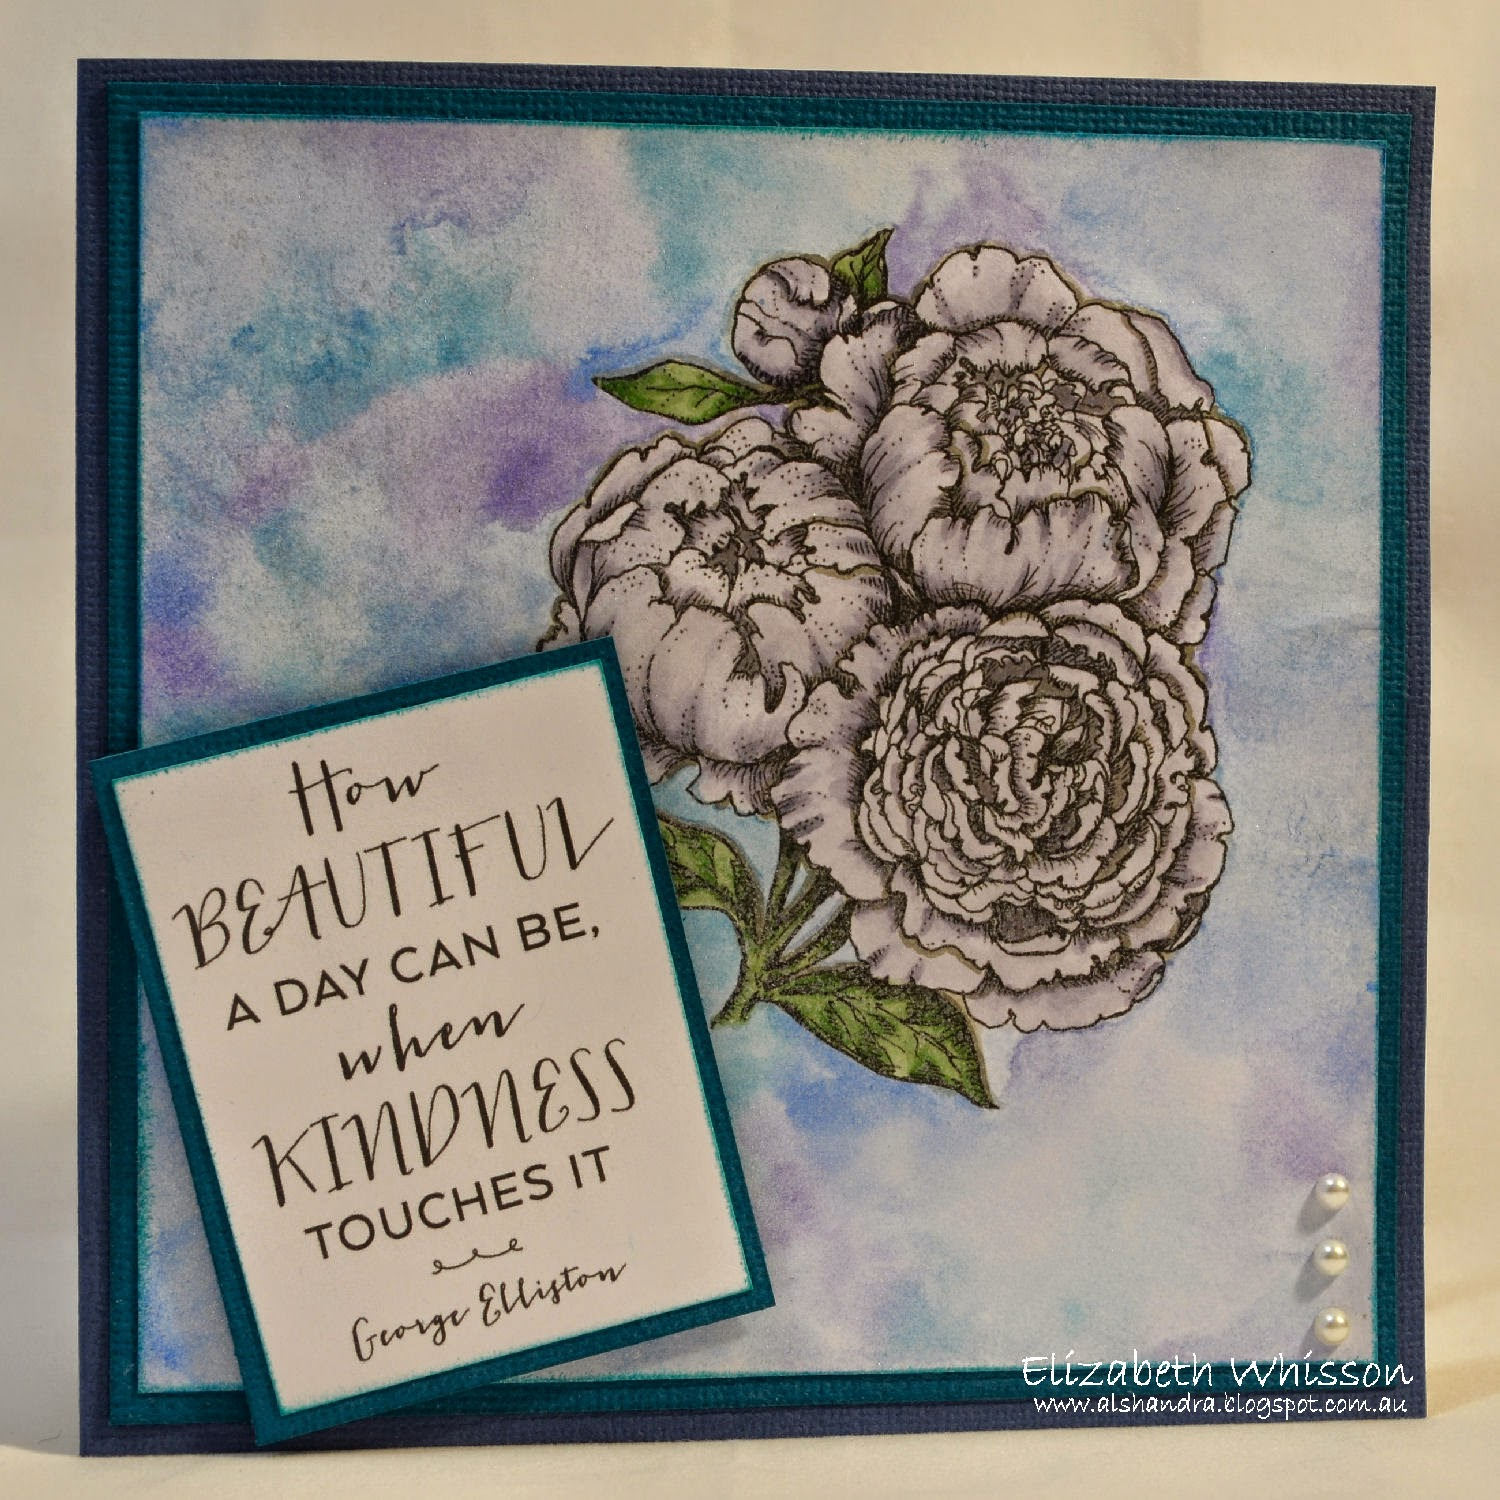 Elizabeth Whisson, PowerPoppy, peonies, handmade card, Copic, watercolour pencils